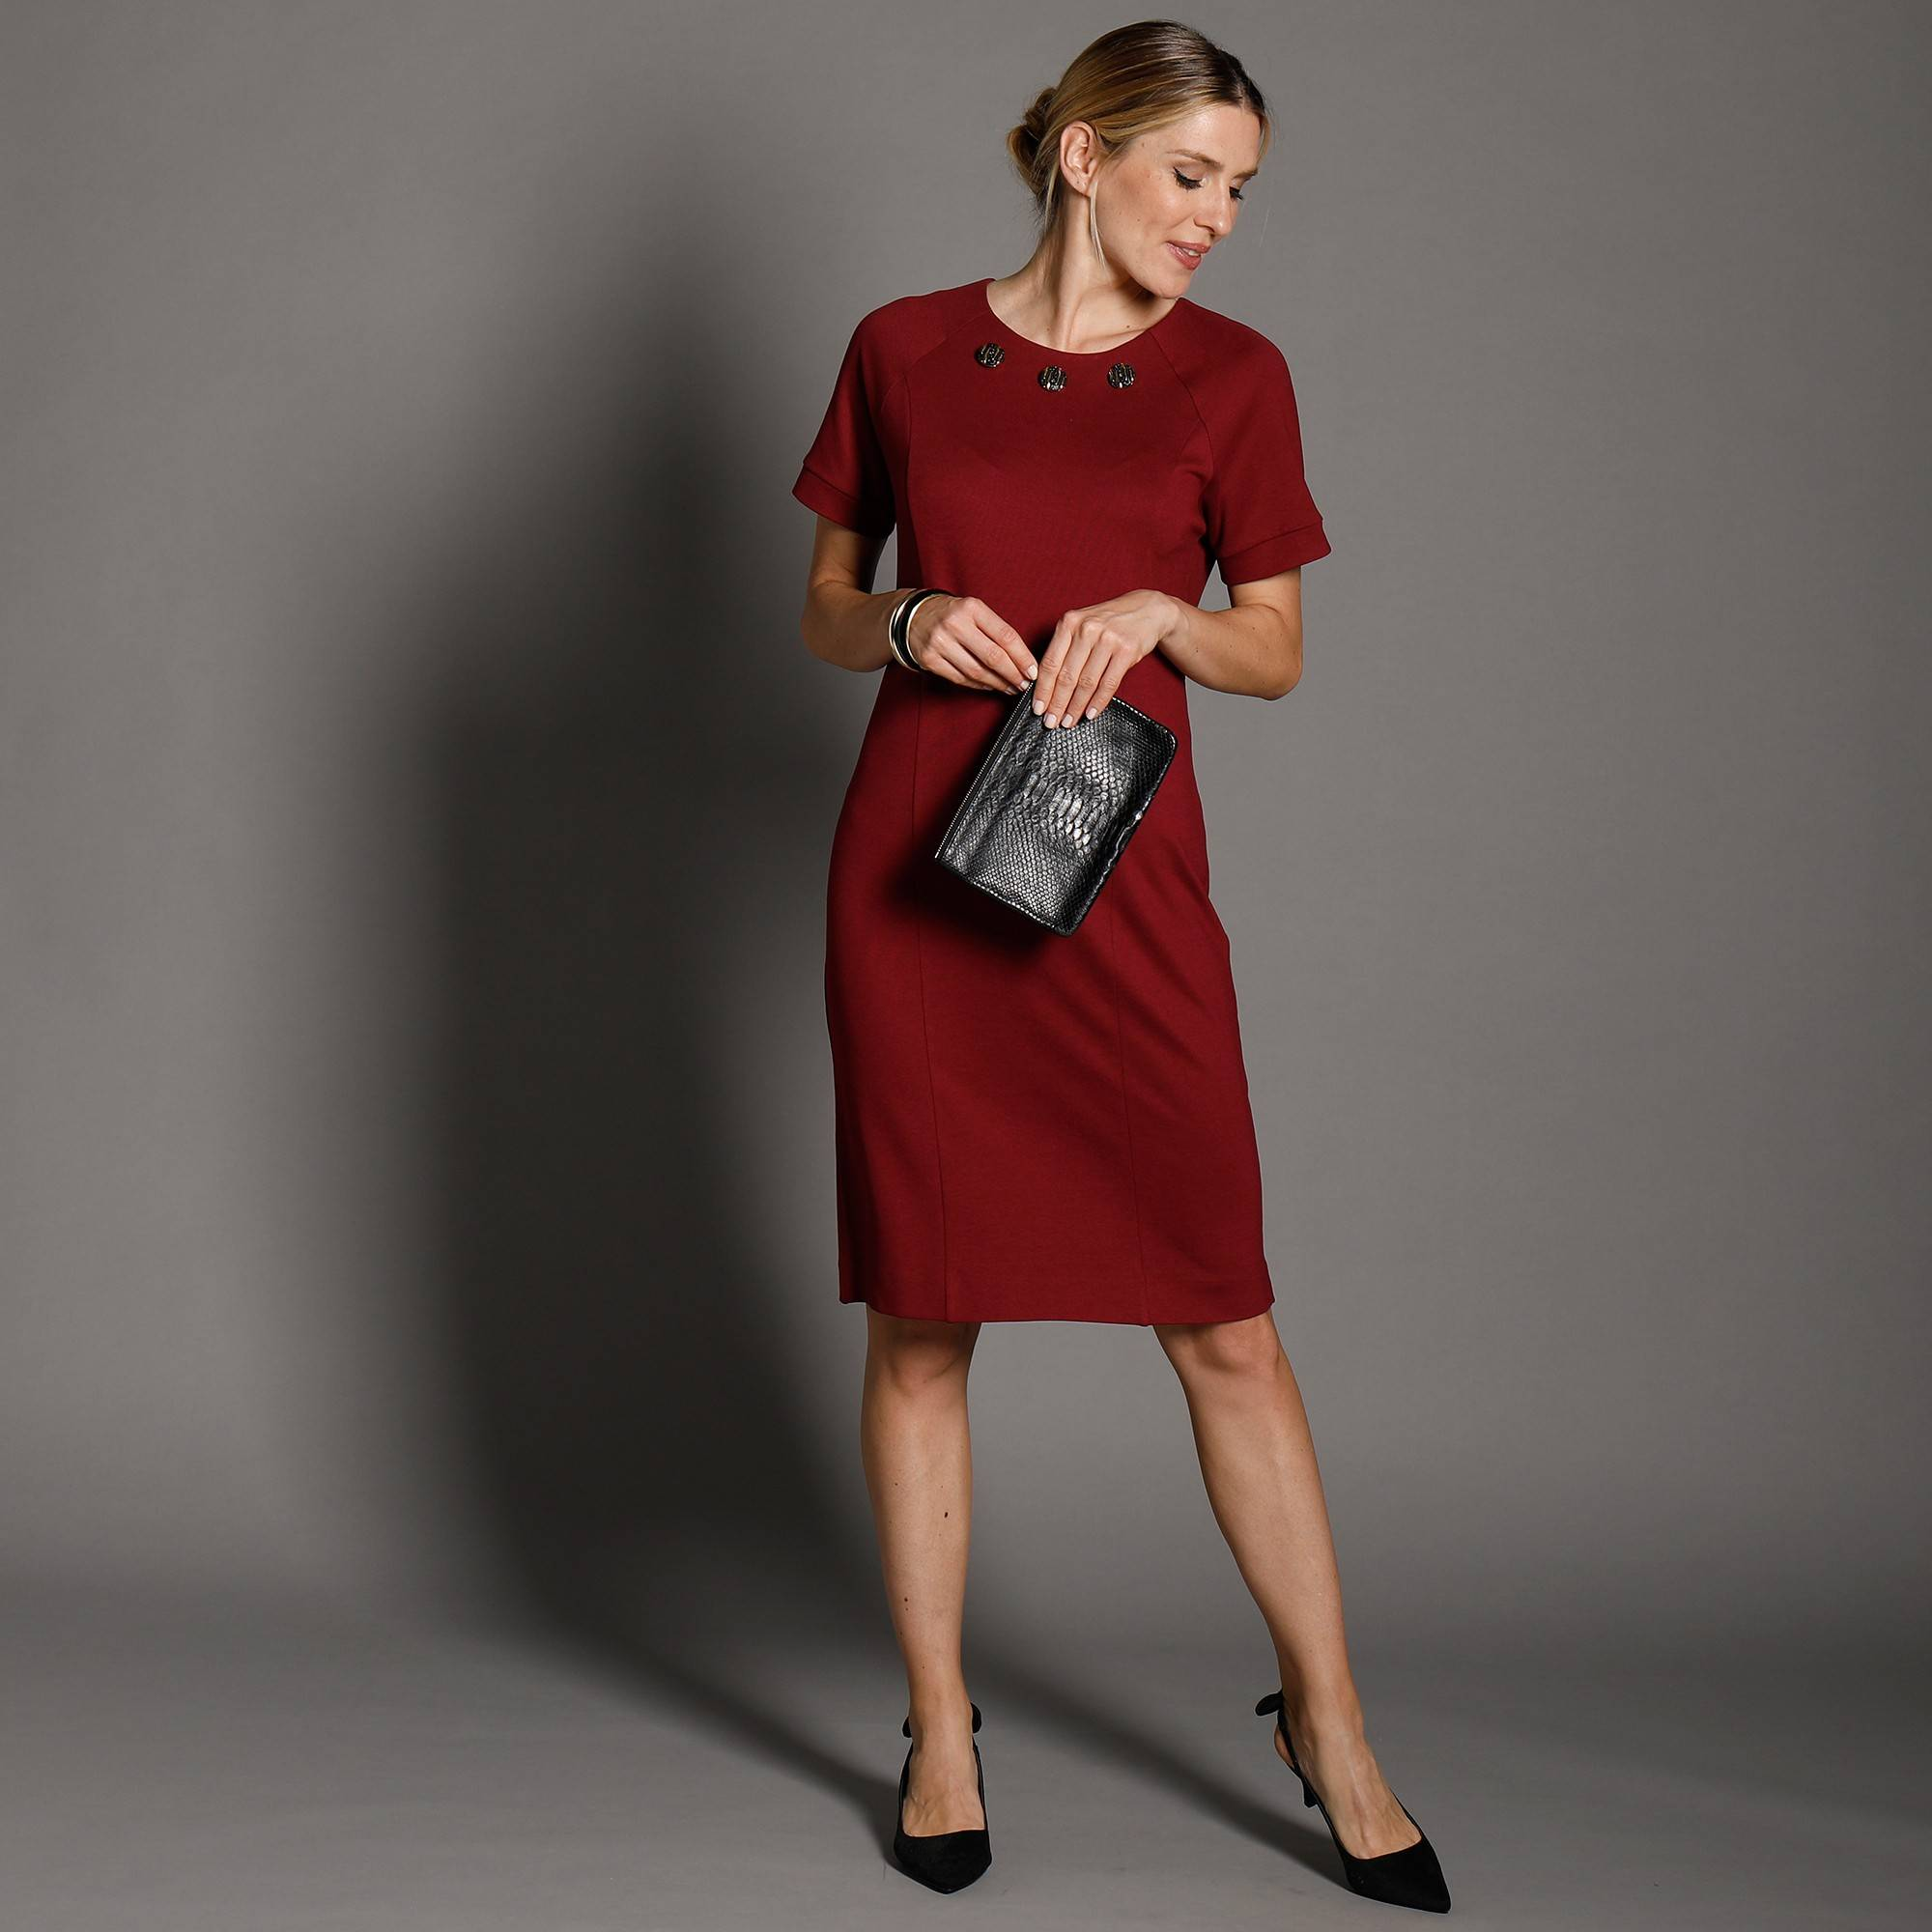 Robe unie col boutons fantaisies - Rouge - Taille : 34,36 - Blancheporte